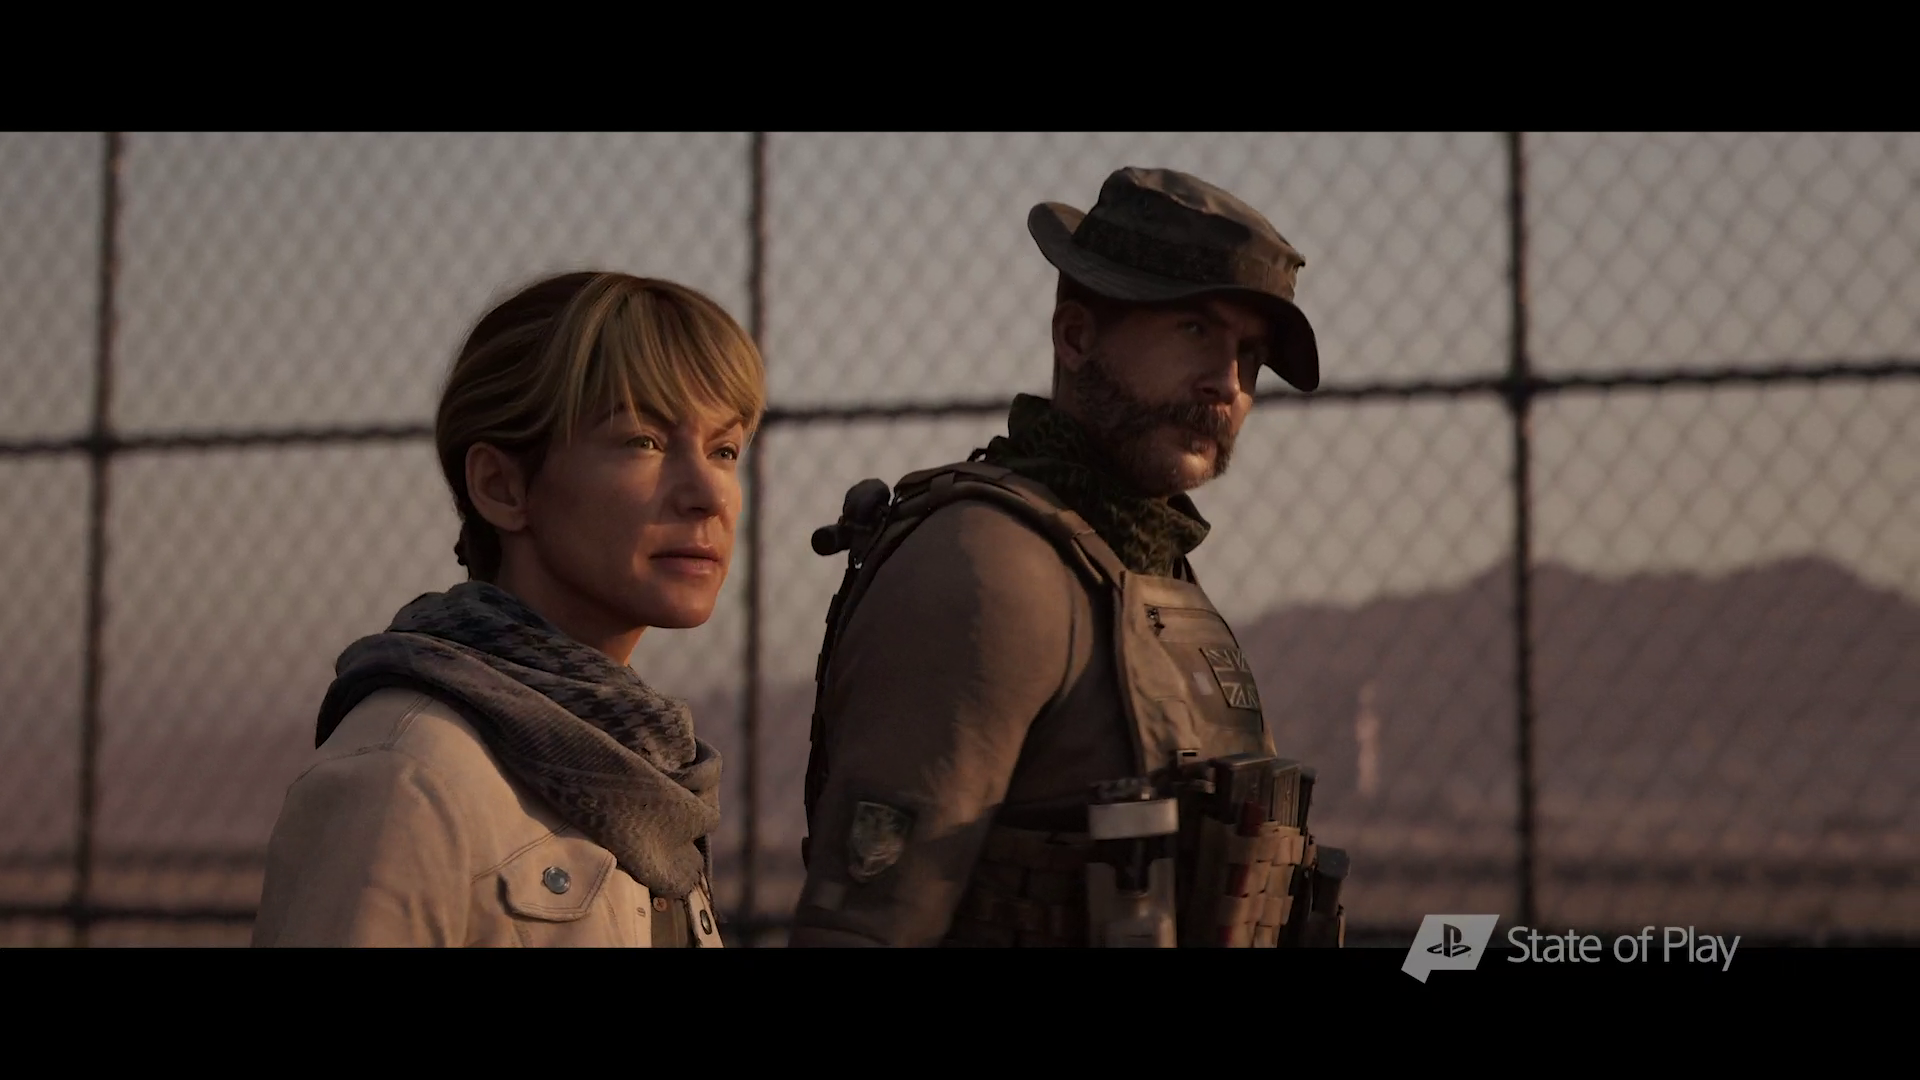 a woman and Capt. Price in front of a fence in Call of Duty: Modern Warfare